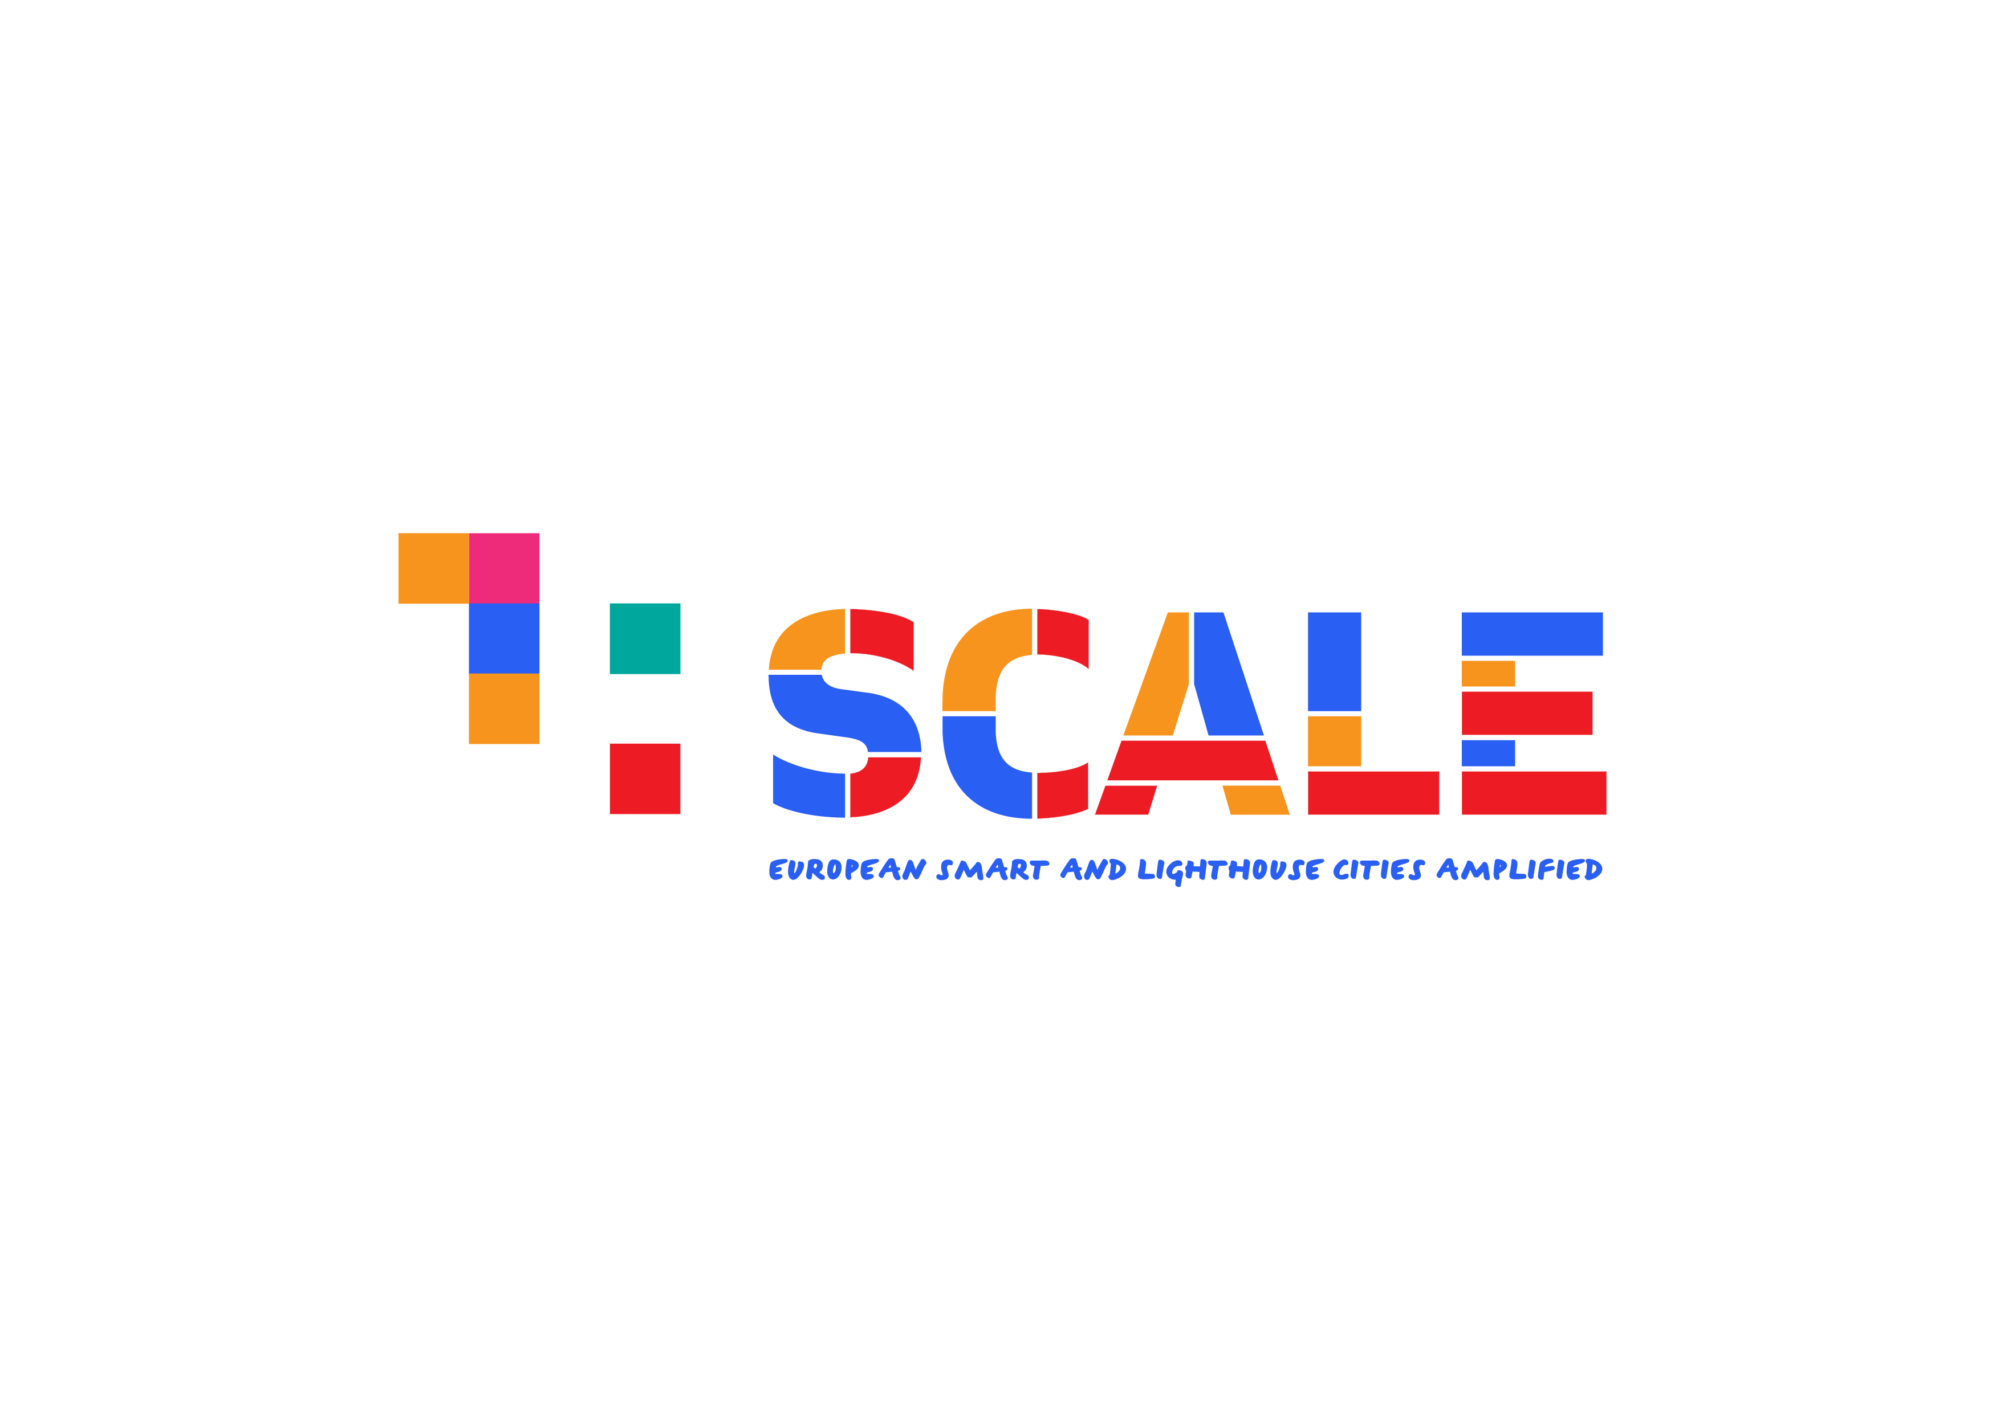 SCALE is calling for Smart City Experts